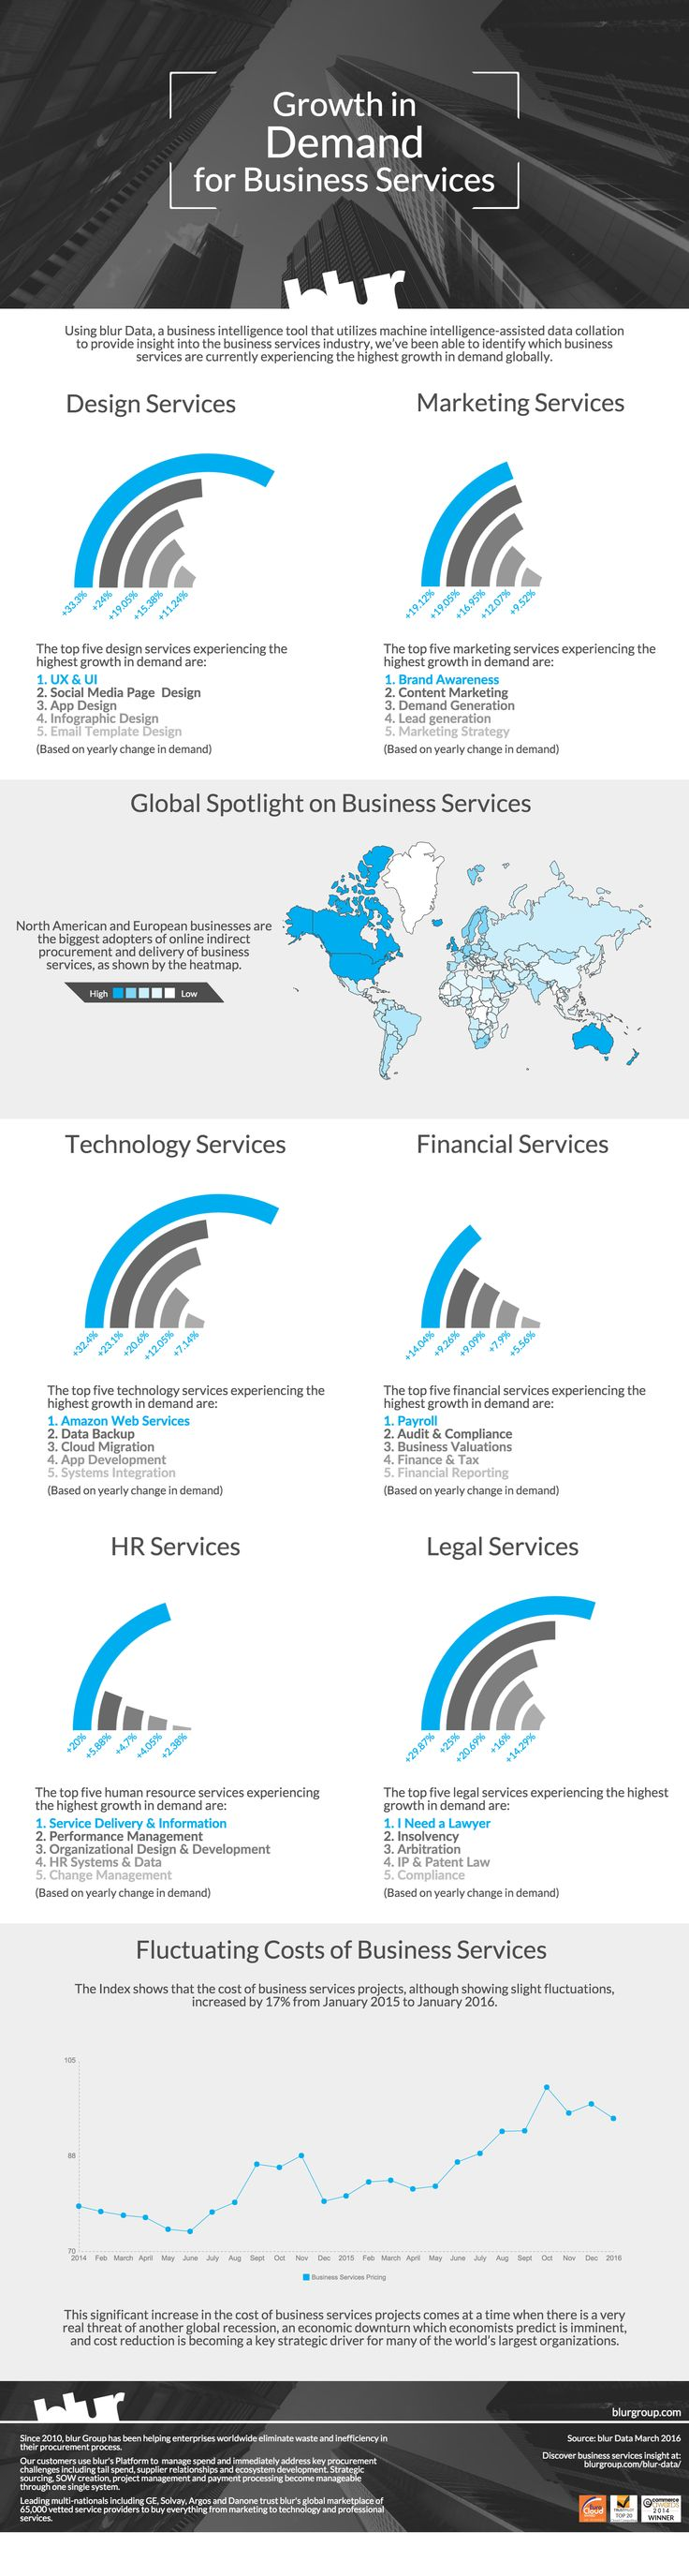 We recently used blur Data – a business intelligence tool that provides insights into the business services industry – to ascertain which business services are currently experiencing the highest growth in demand globally. Simply click the infographic to be taken to the blog.